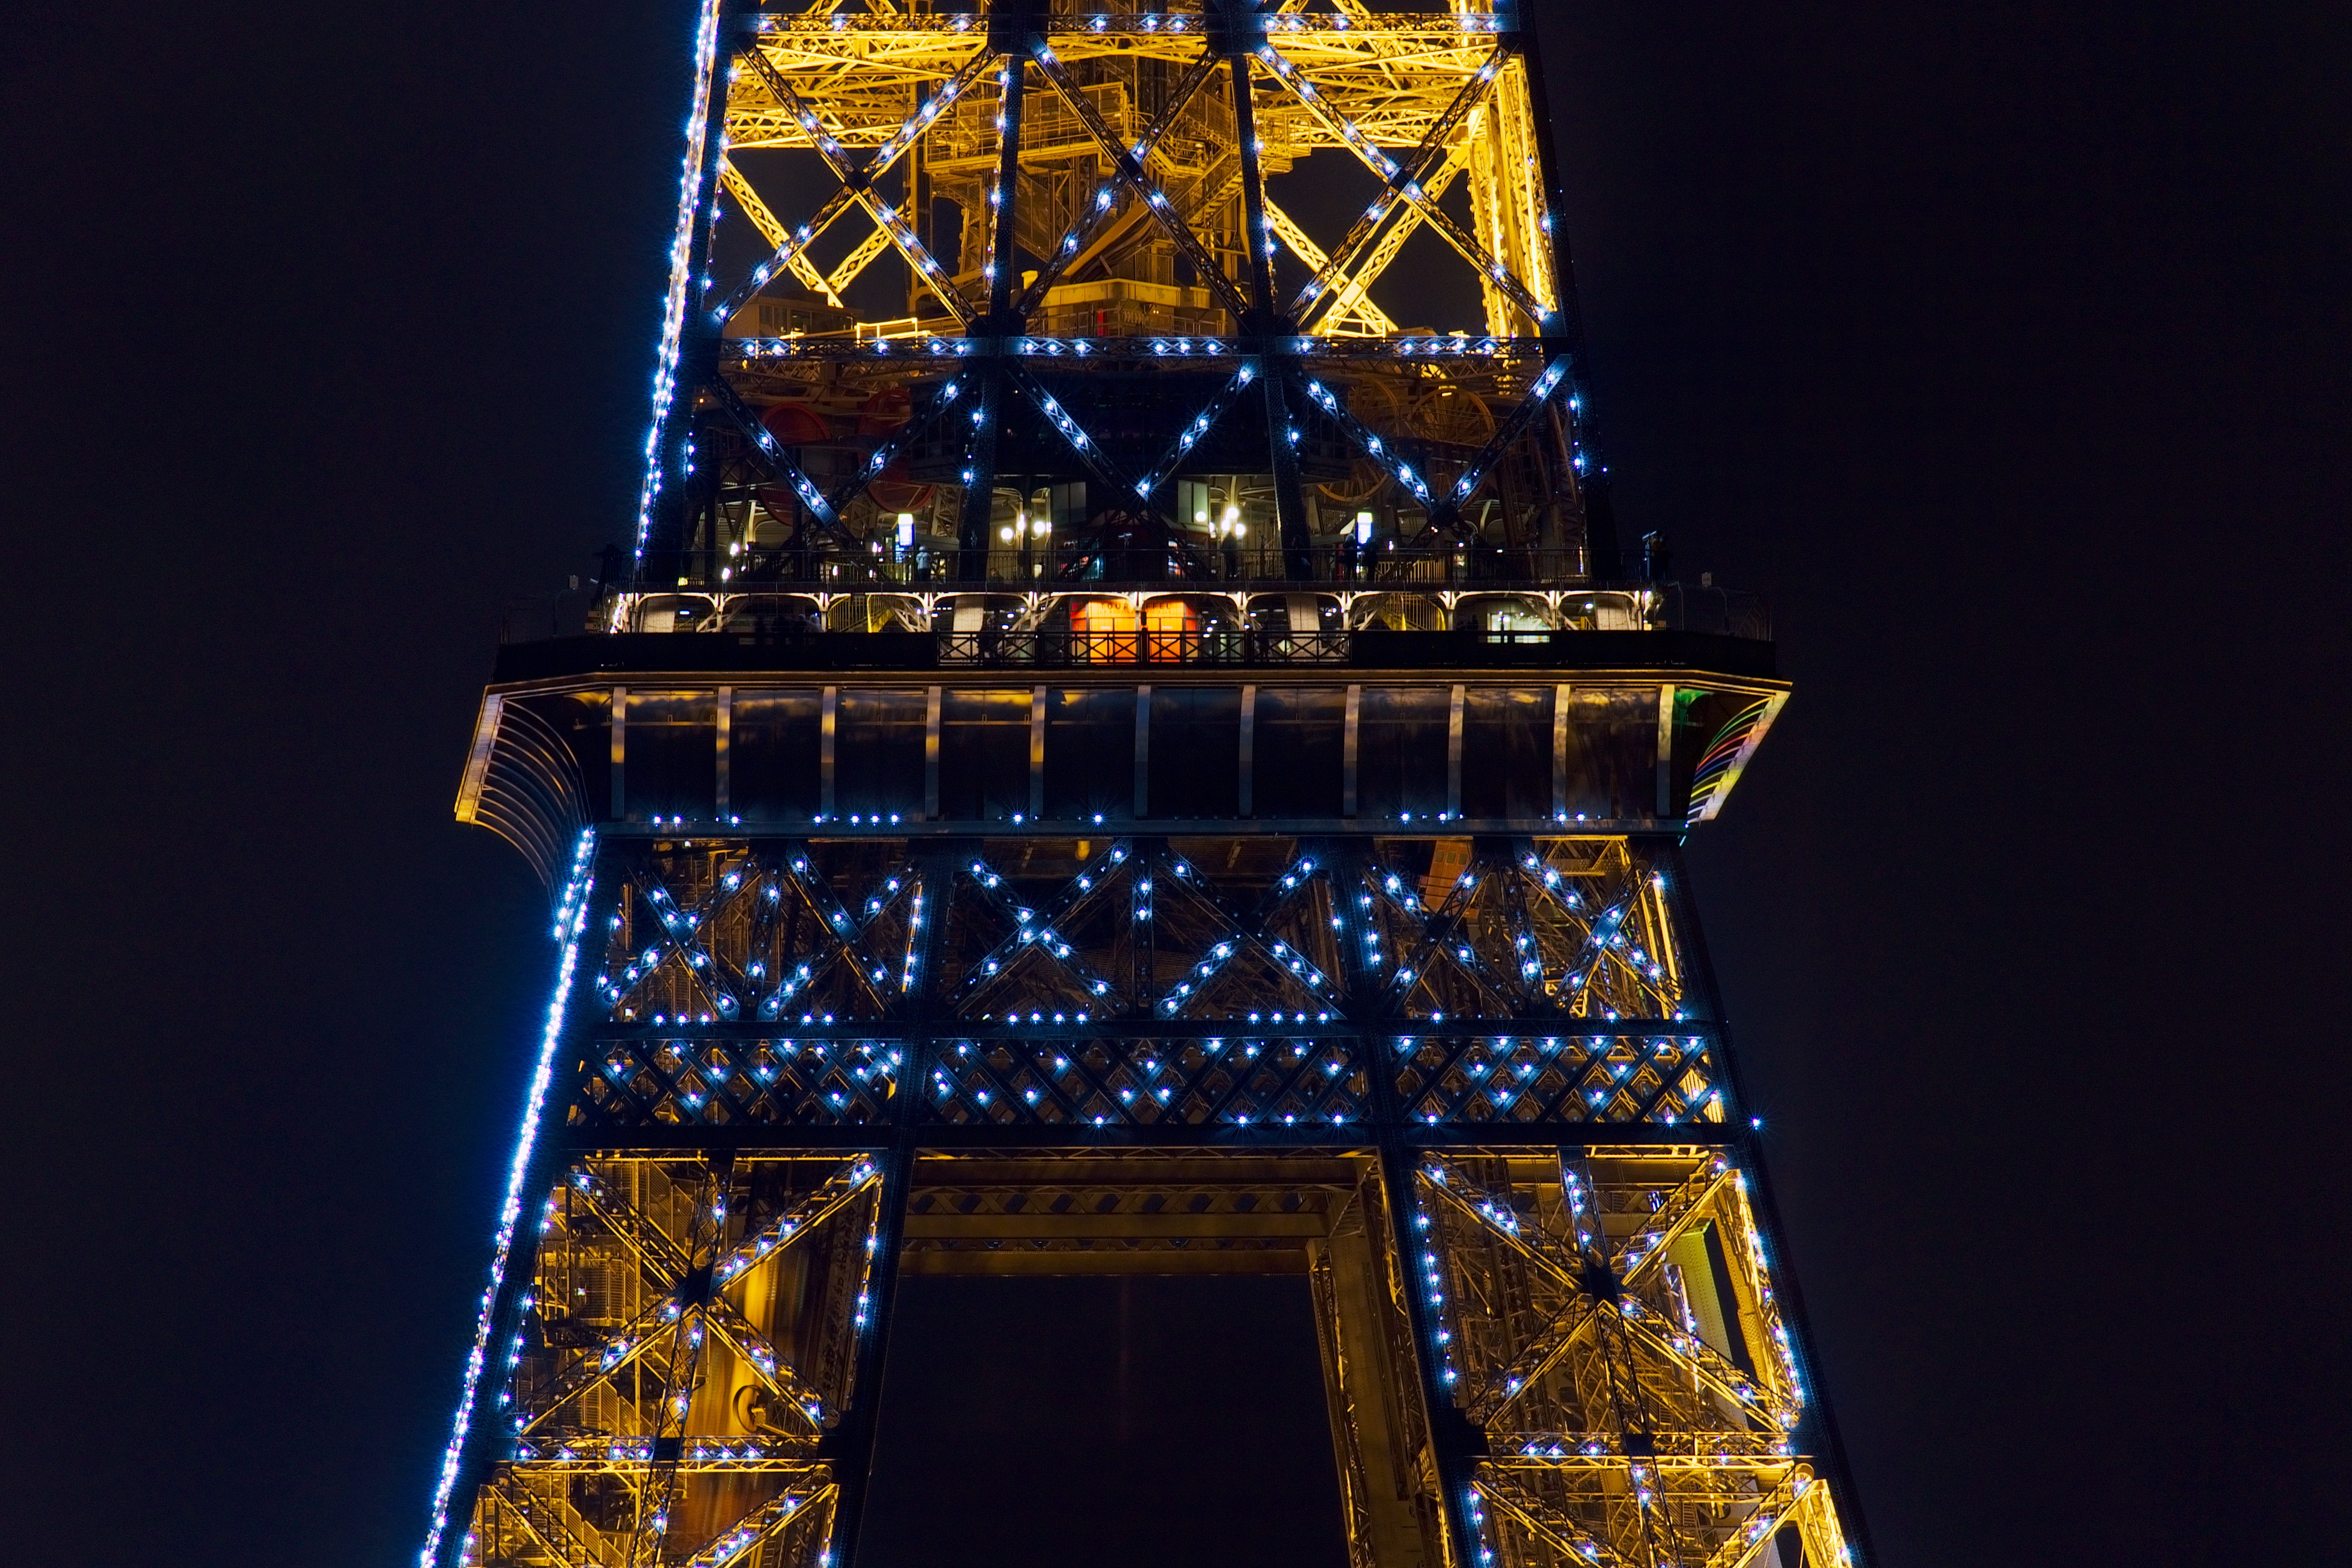 File deuxi me tage de la tour eiffel 15 d c wikimedia commons - Tour eiffel dimension ...